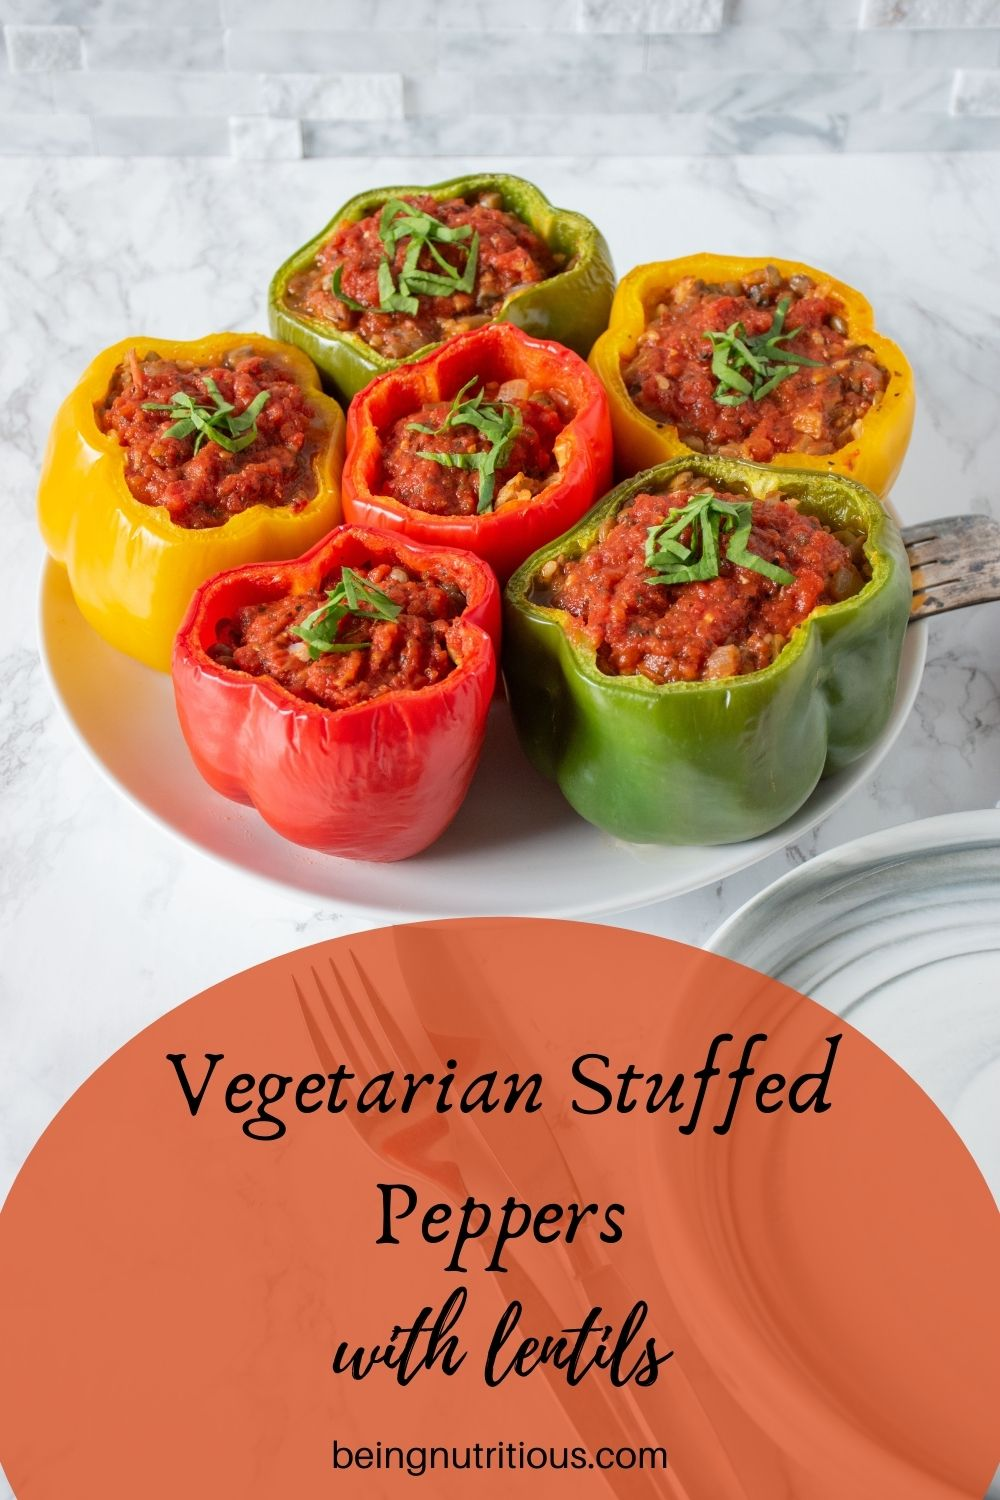 Six stuffed bell peppers on a round plate. Text overlay: Vegetarian stuffed peppers with lentils.